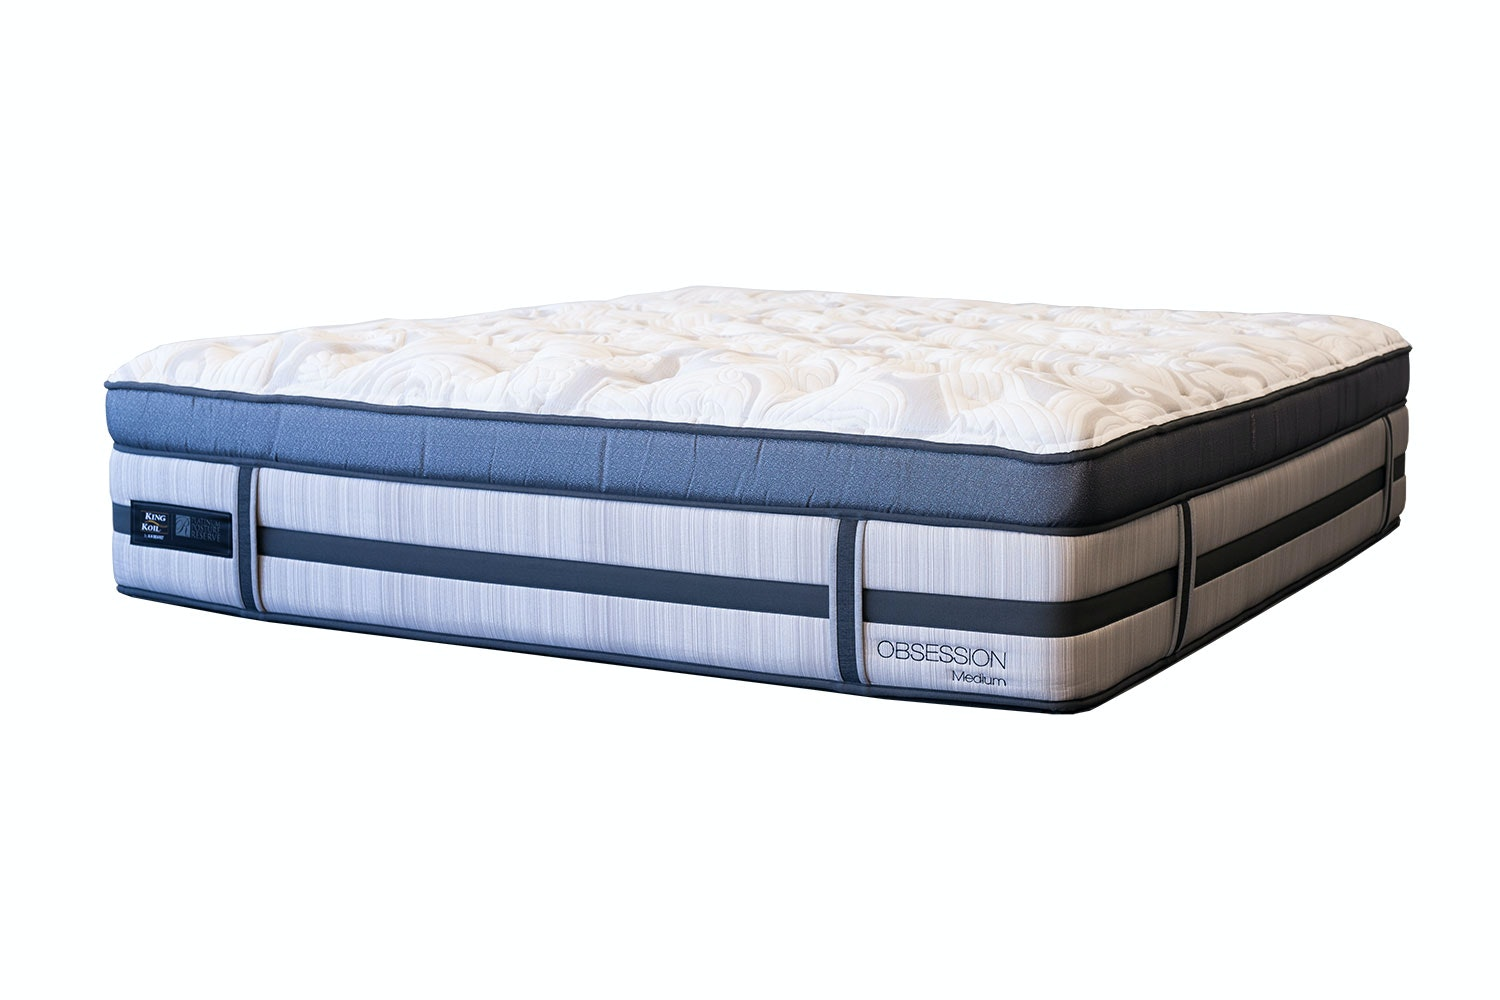 Obsession Medium Queen Mattress by King Koil